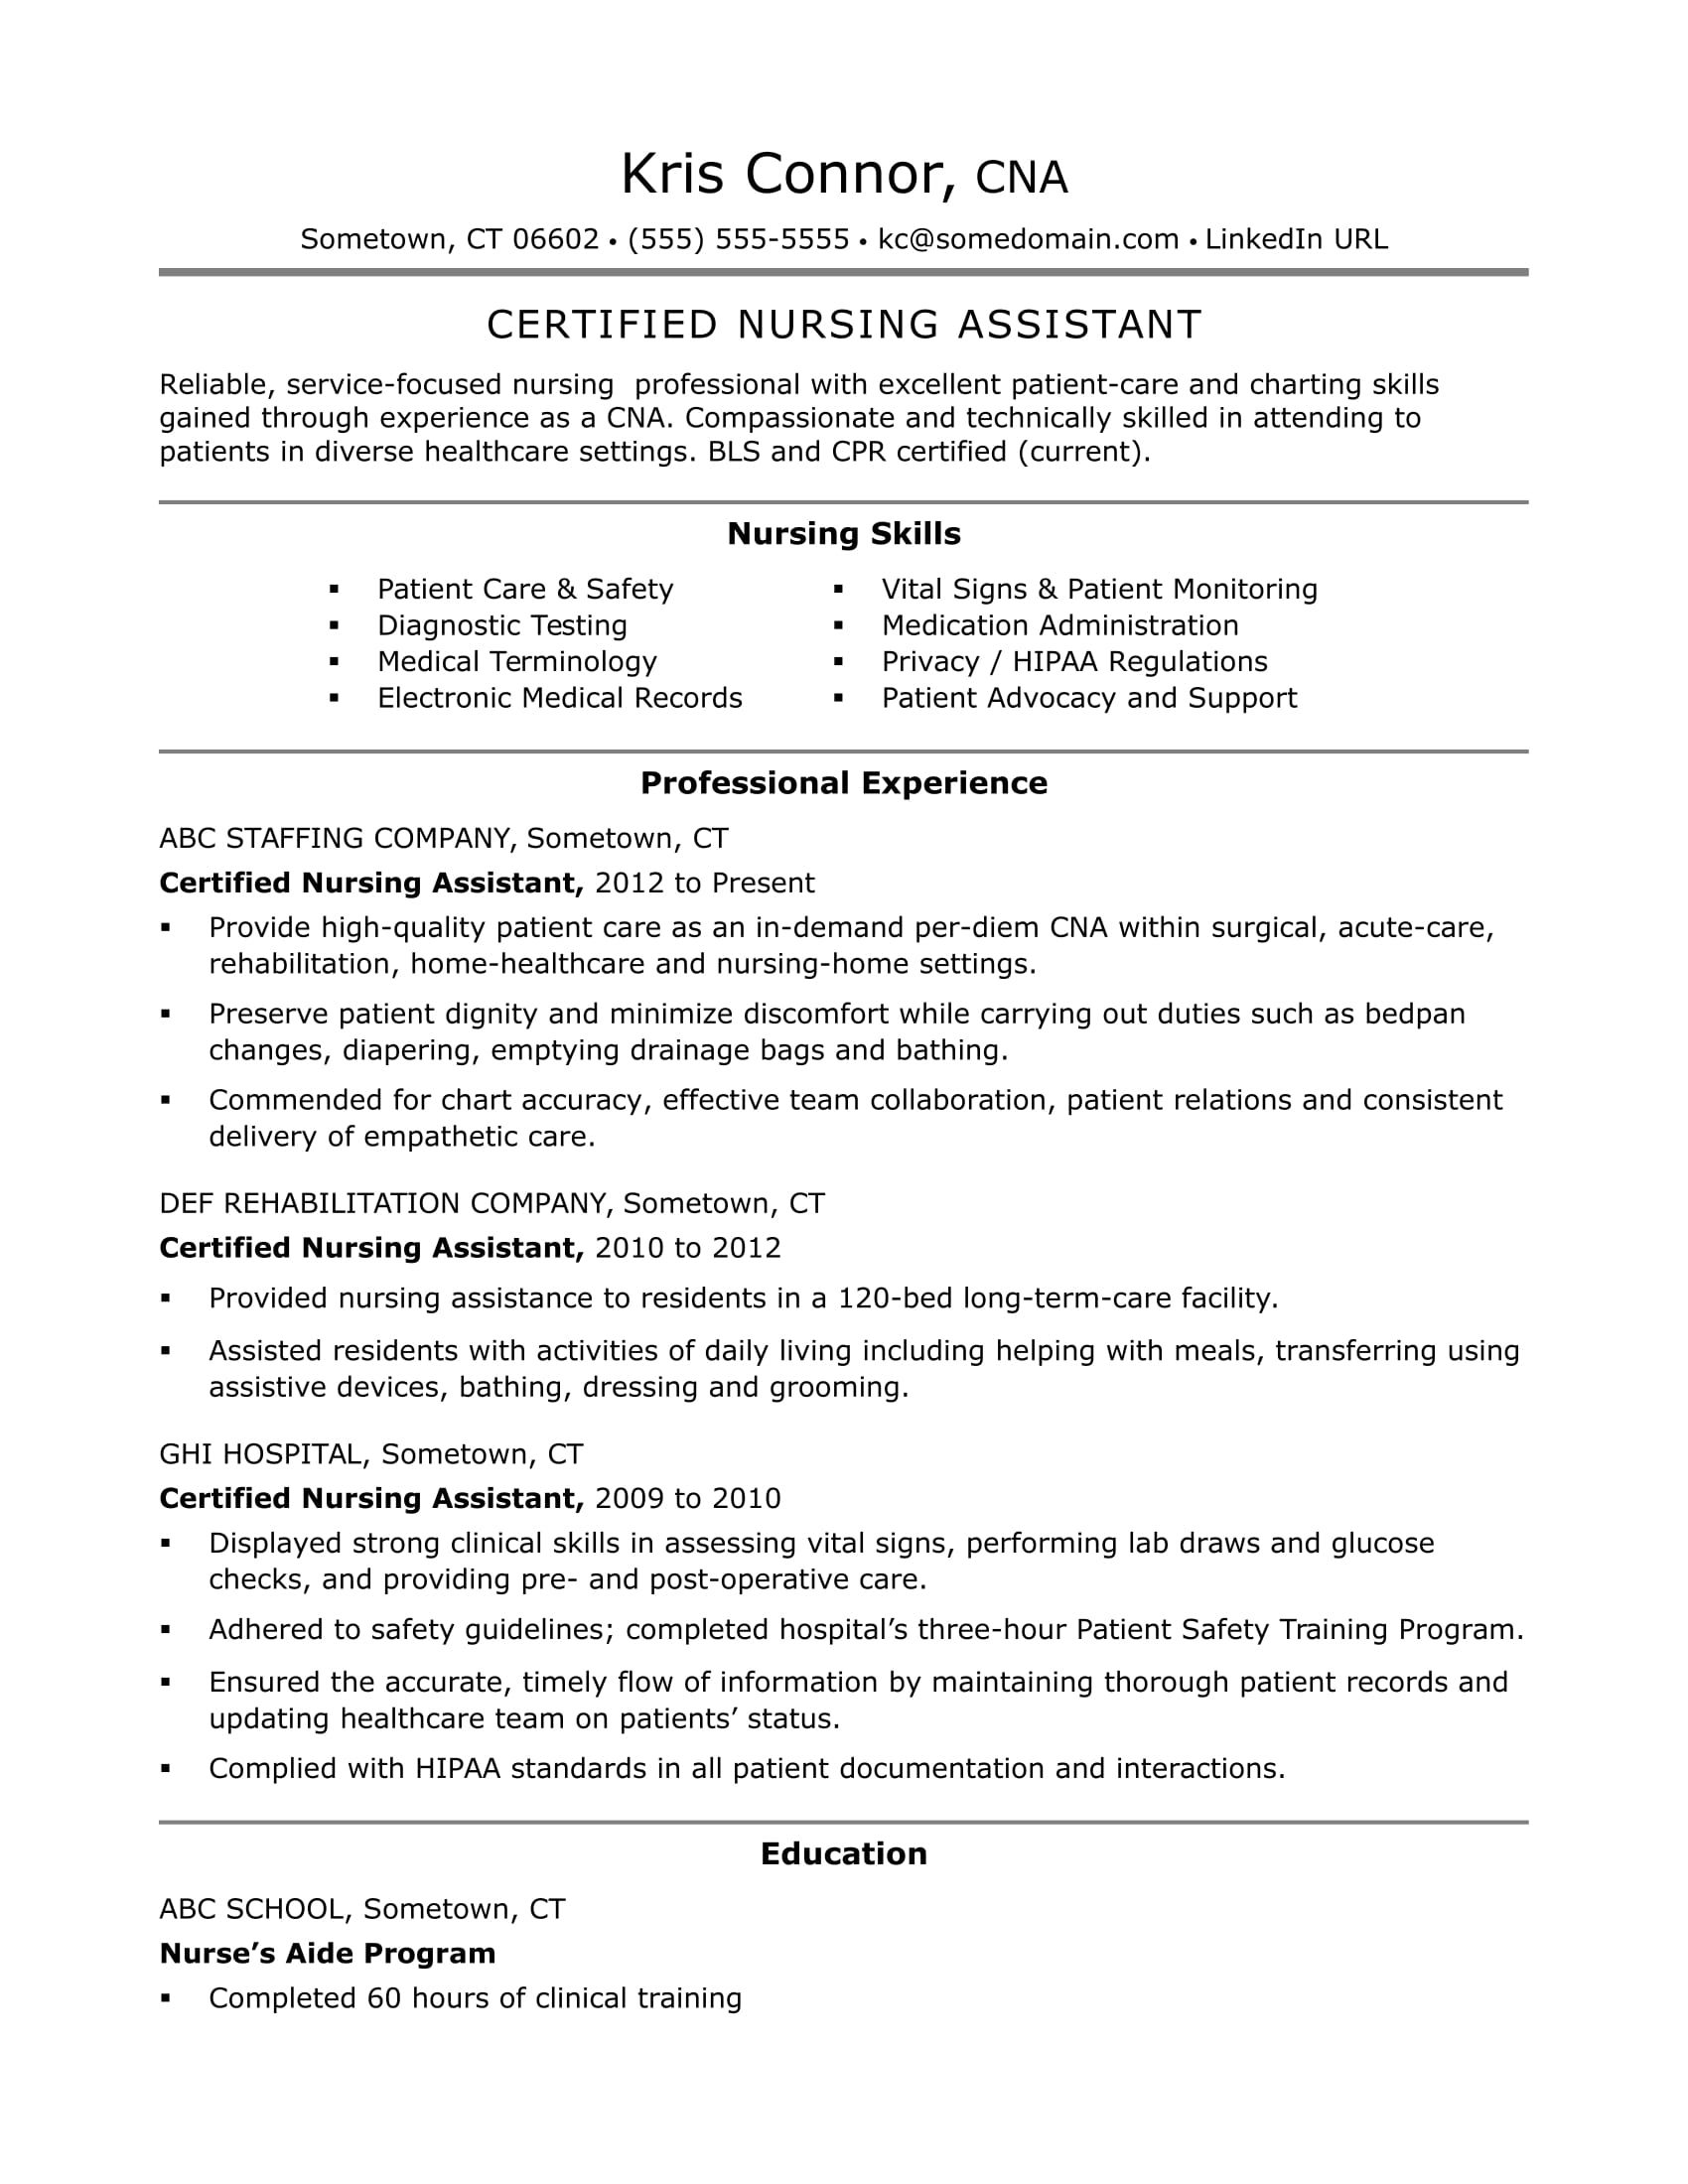 cna resume example - Duties Of Nurse Assistant